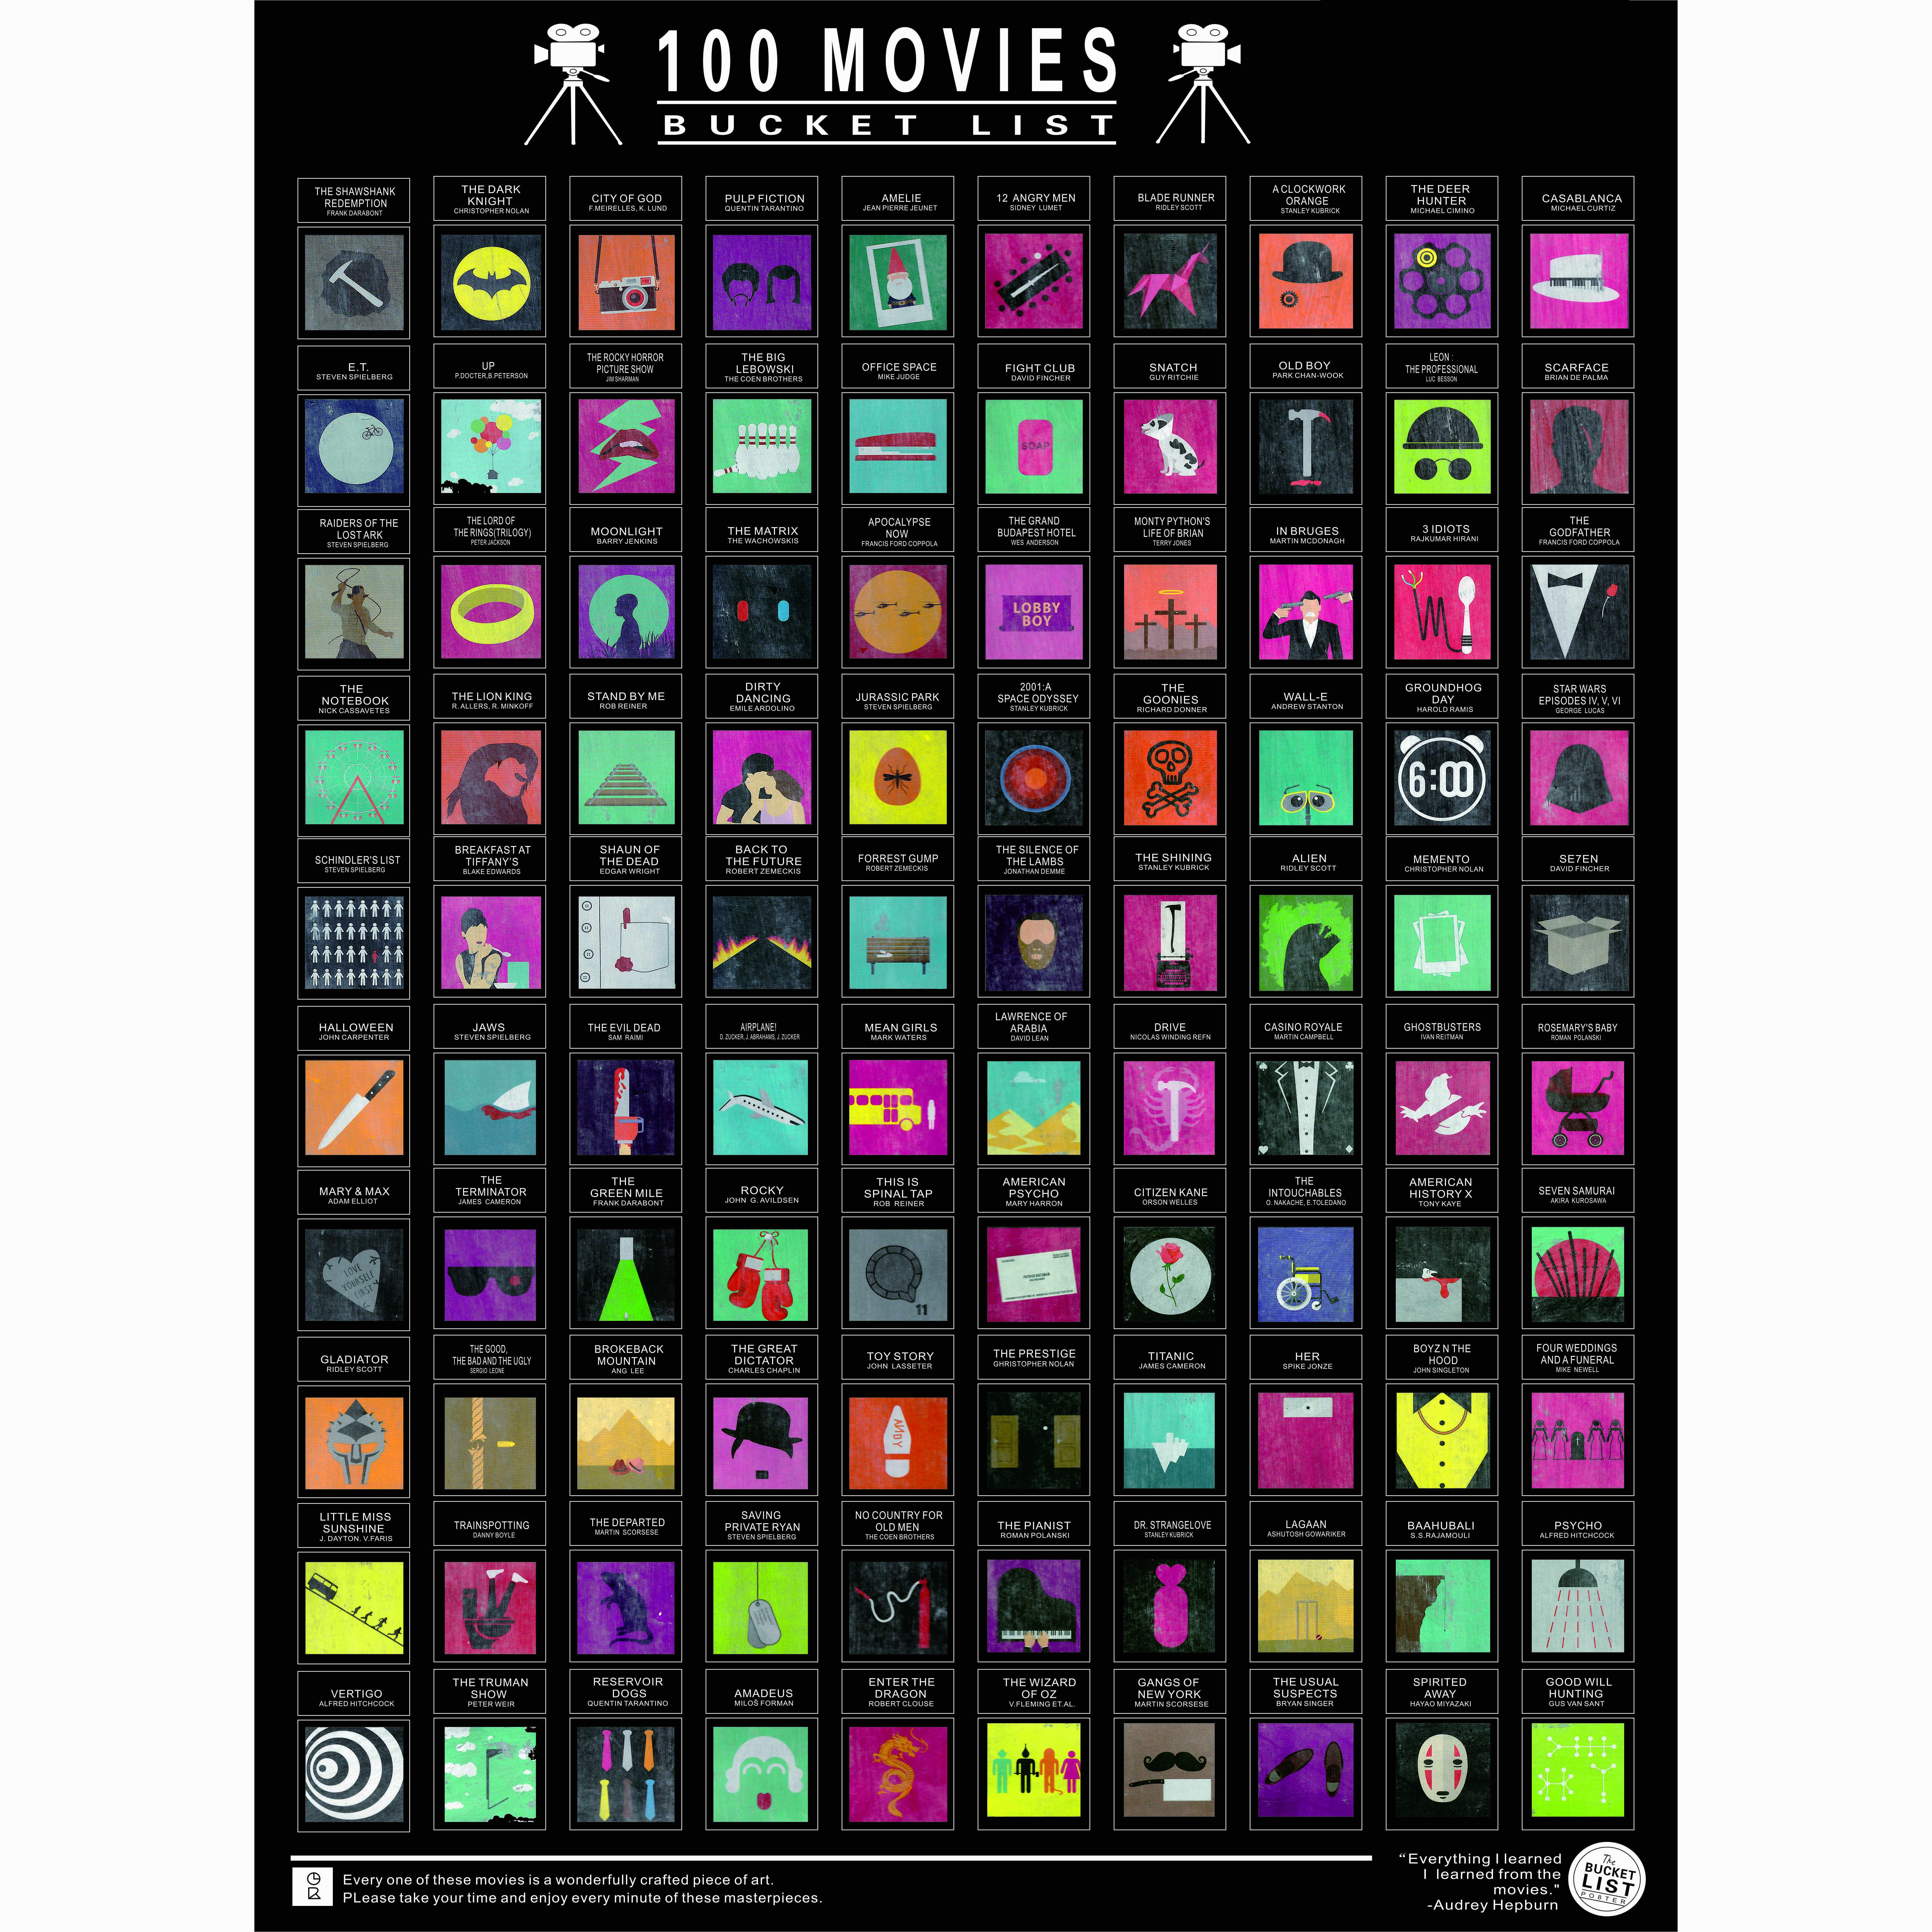 100 MOVIES -- Scratch OFF BUCKET LIST Poster  Scratch Last Wish Poster